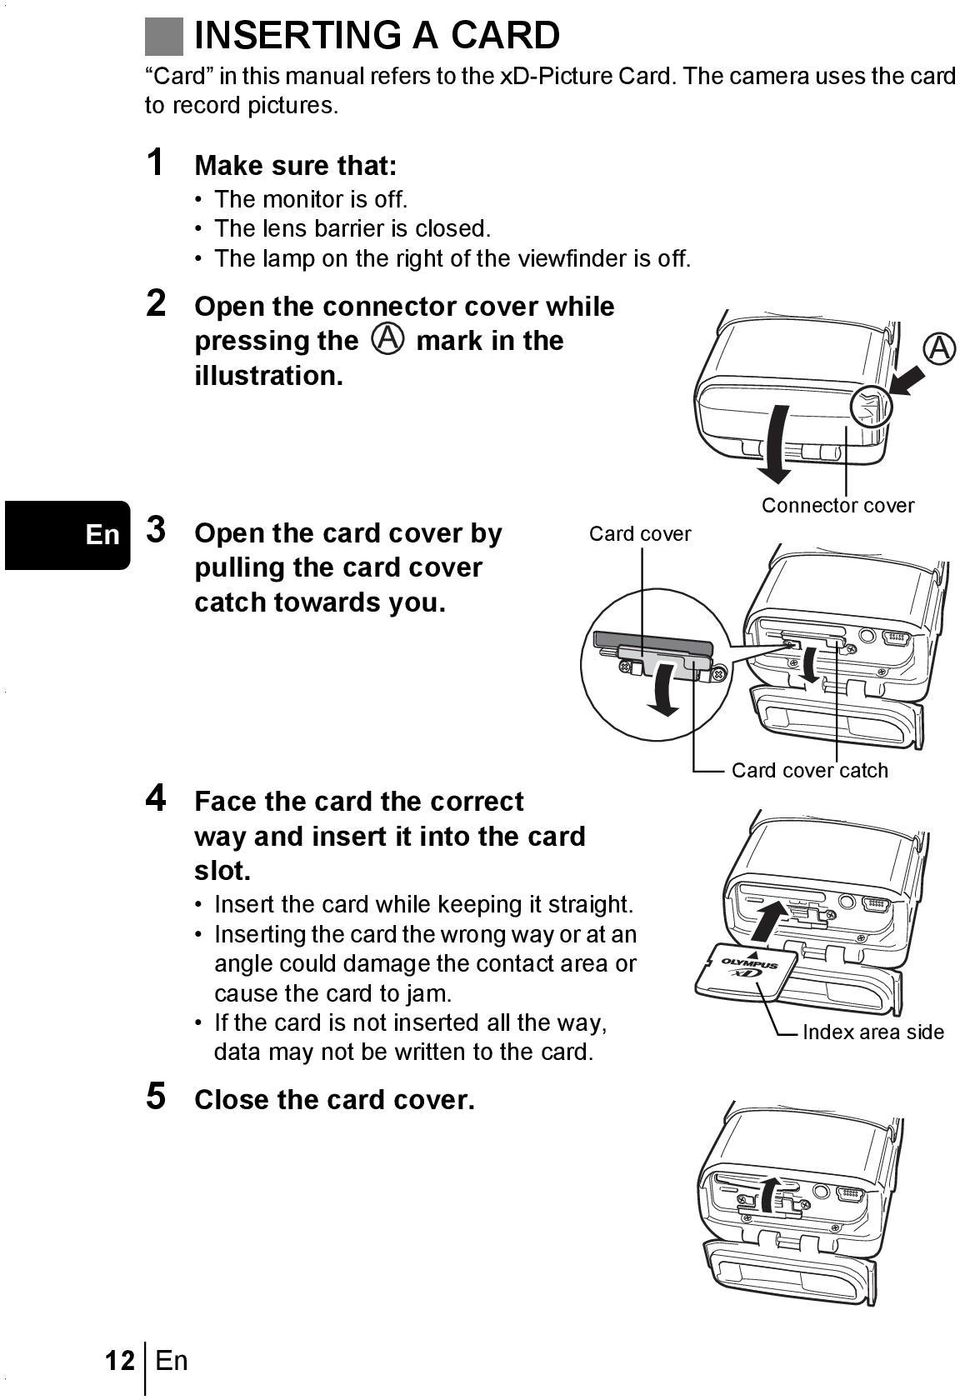 En 3 Open the card cover by pulling the card cover catch towards you. Card cover Connector cover 4 Face the card the correct way and insert it into the card slot.